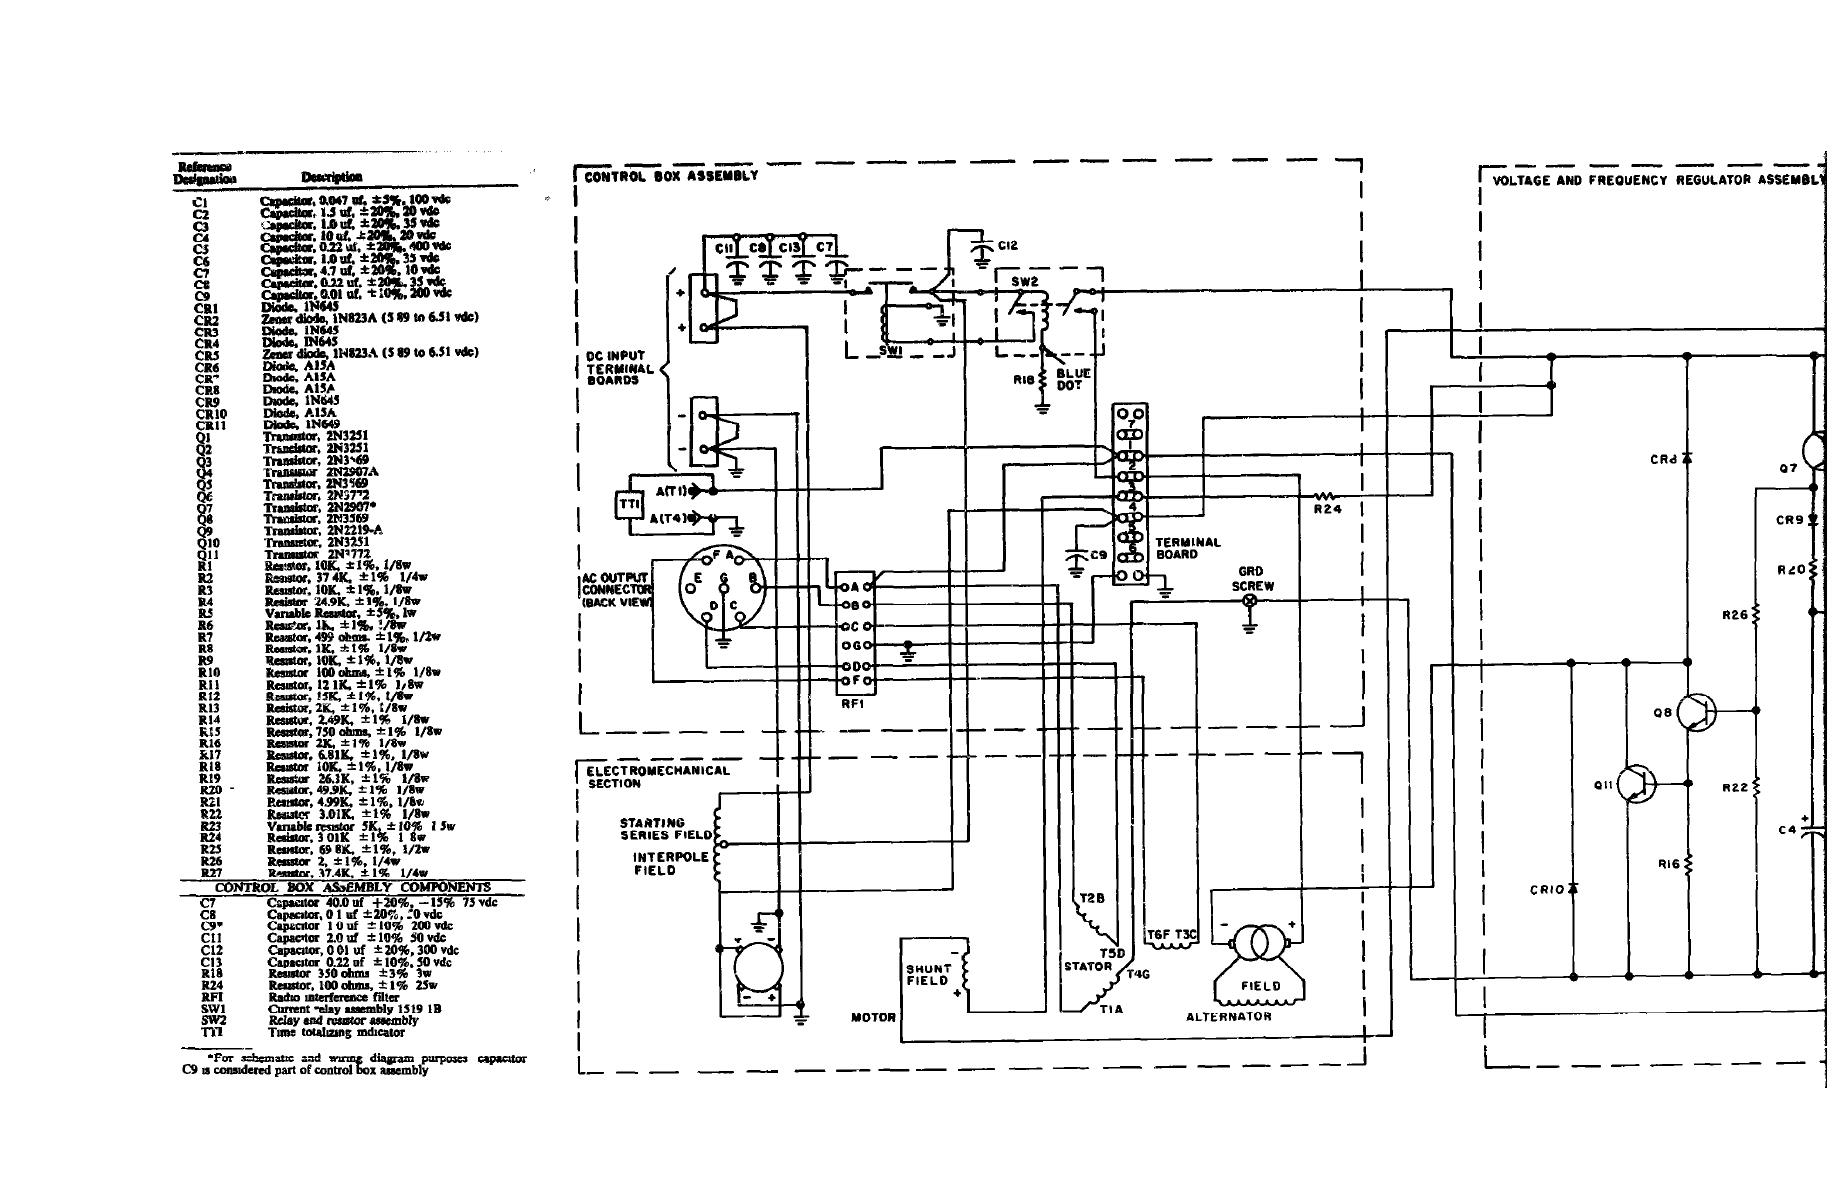 Generator Schematic Diagram Change Your Idea With Wiring Inverter Figure Fo 2 1 For Motor Pu 750a A Tm Rh Generators Tpub